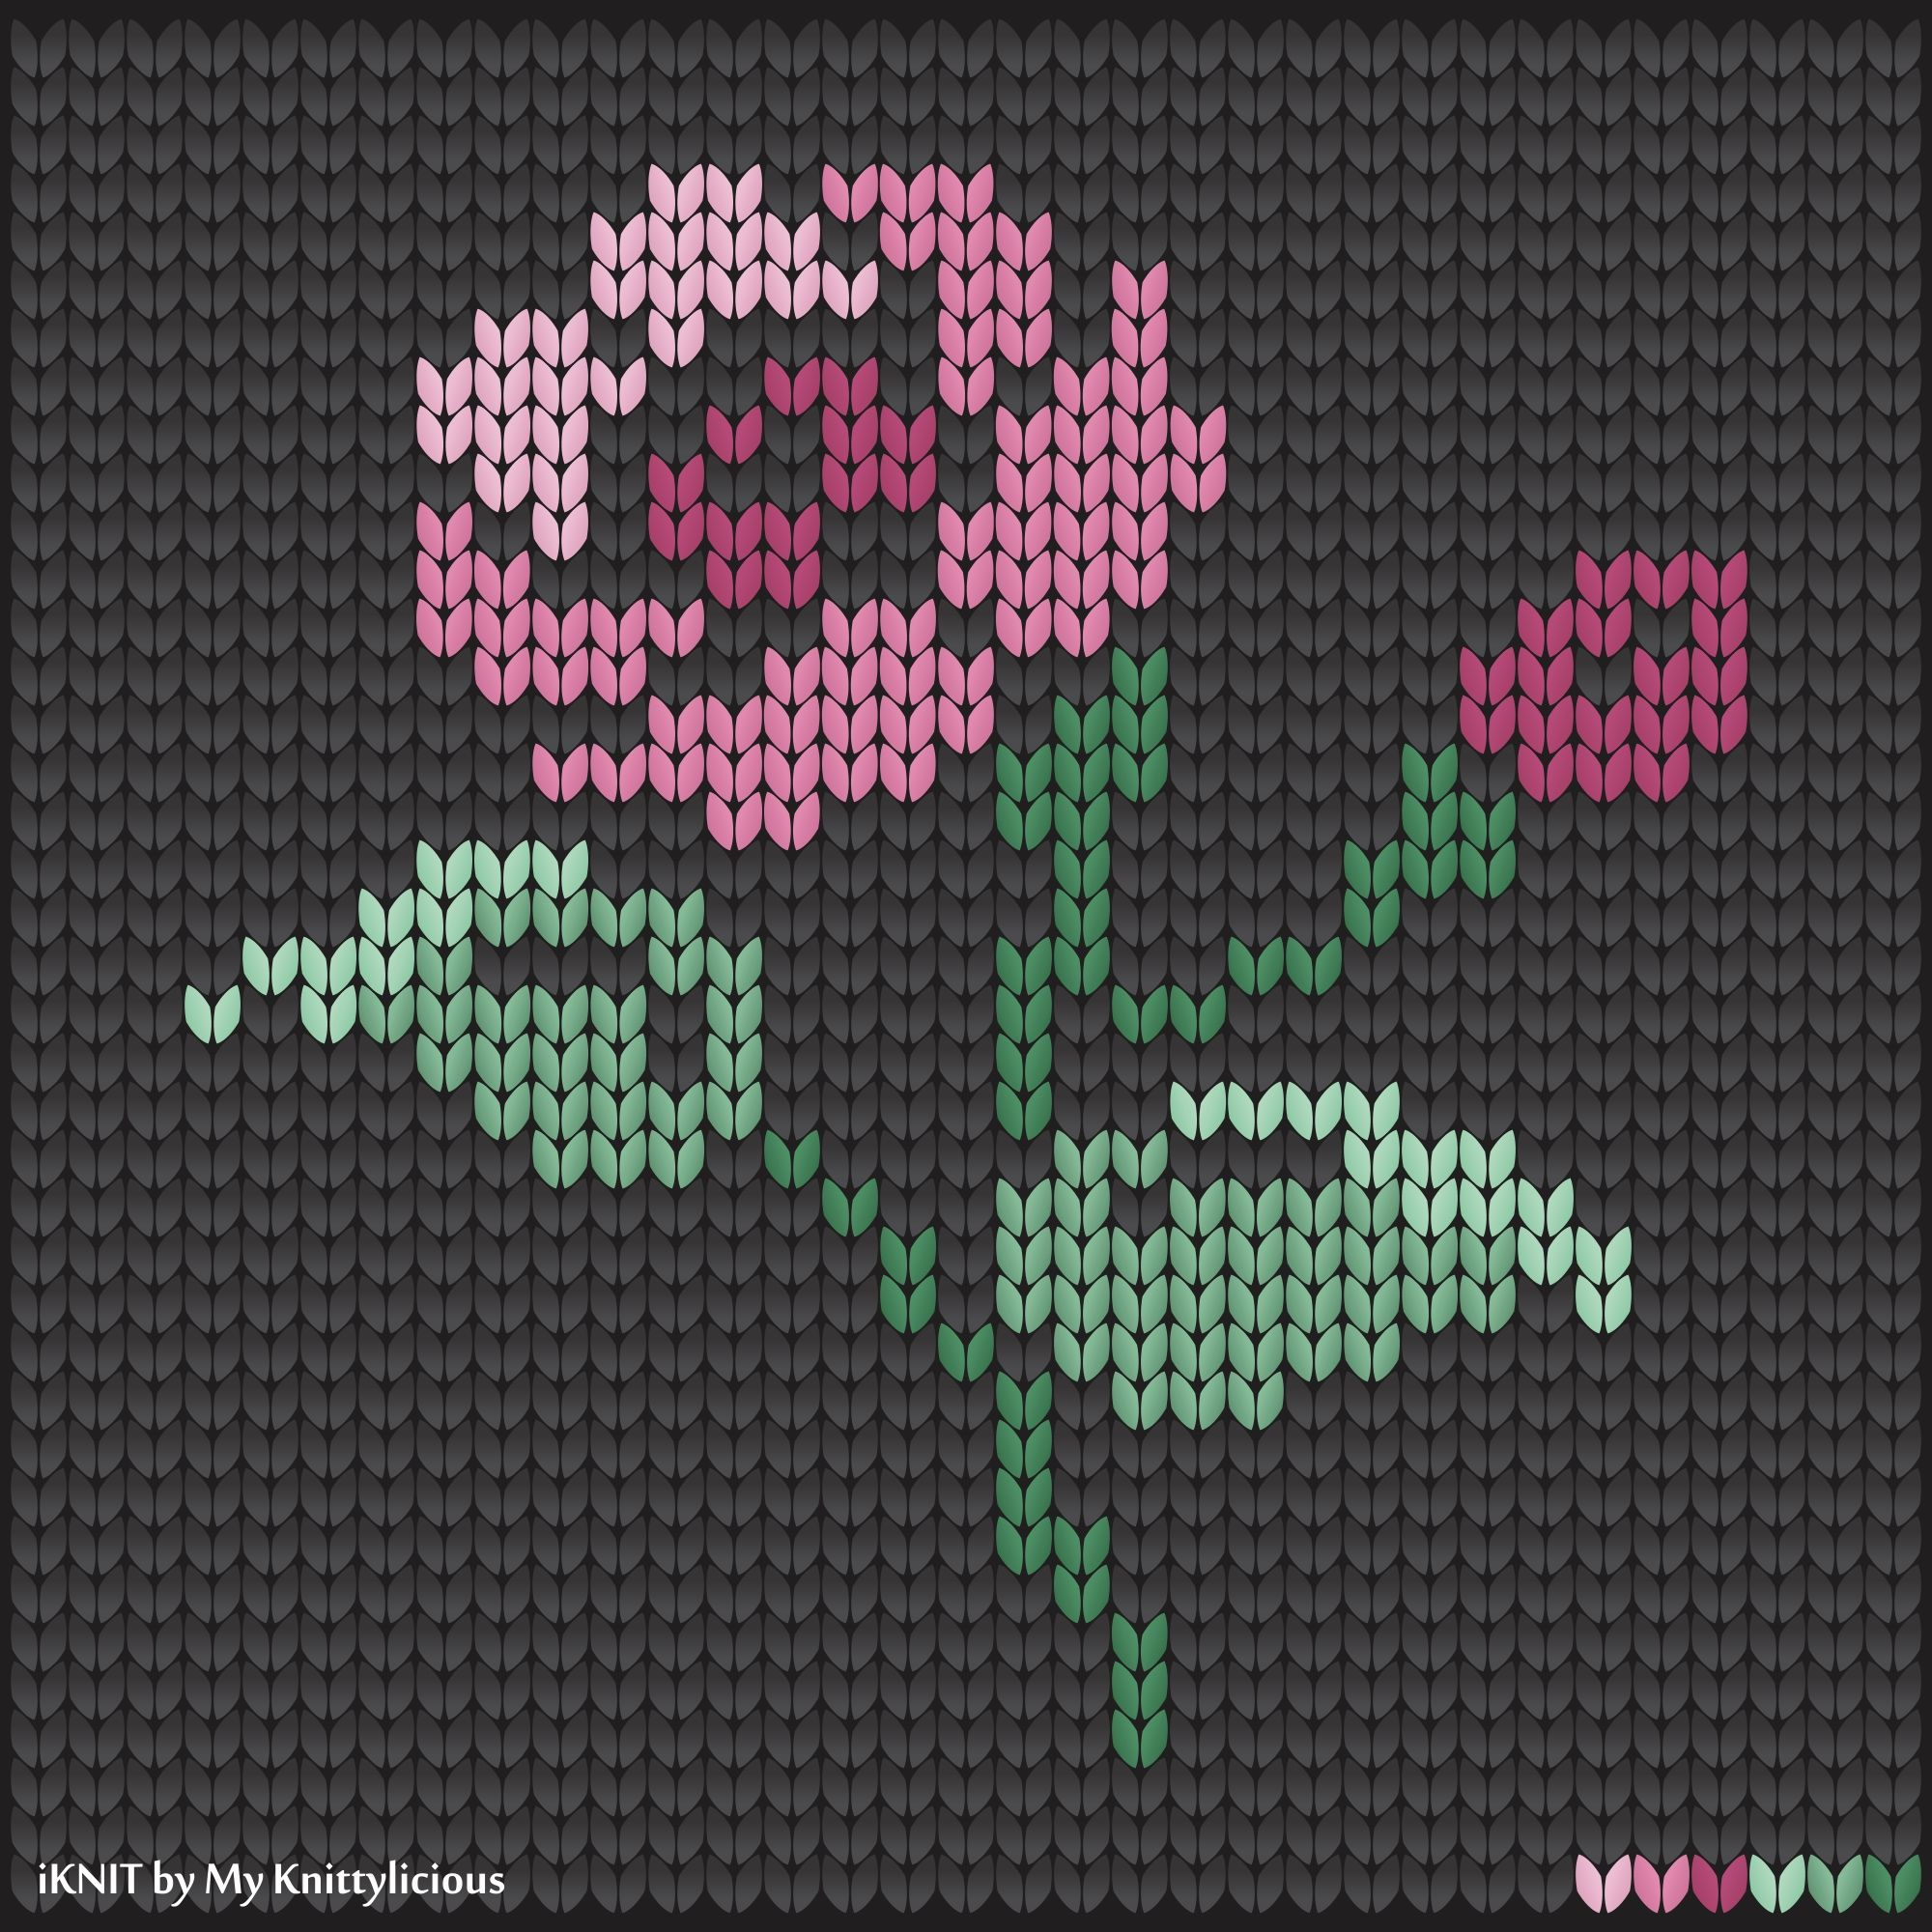 Knitting pattern of the Flower | Cosas para comprar | Pinterest ...